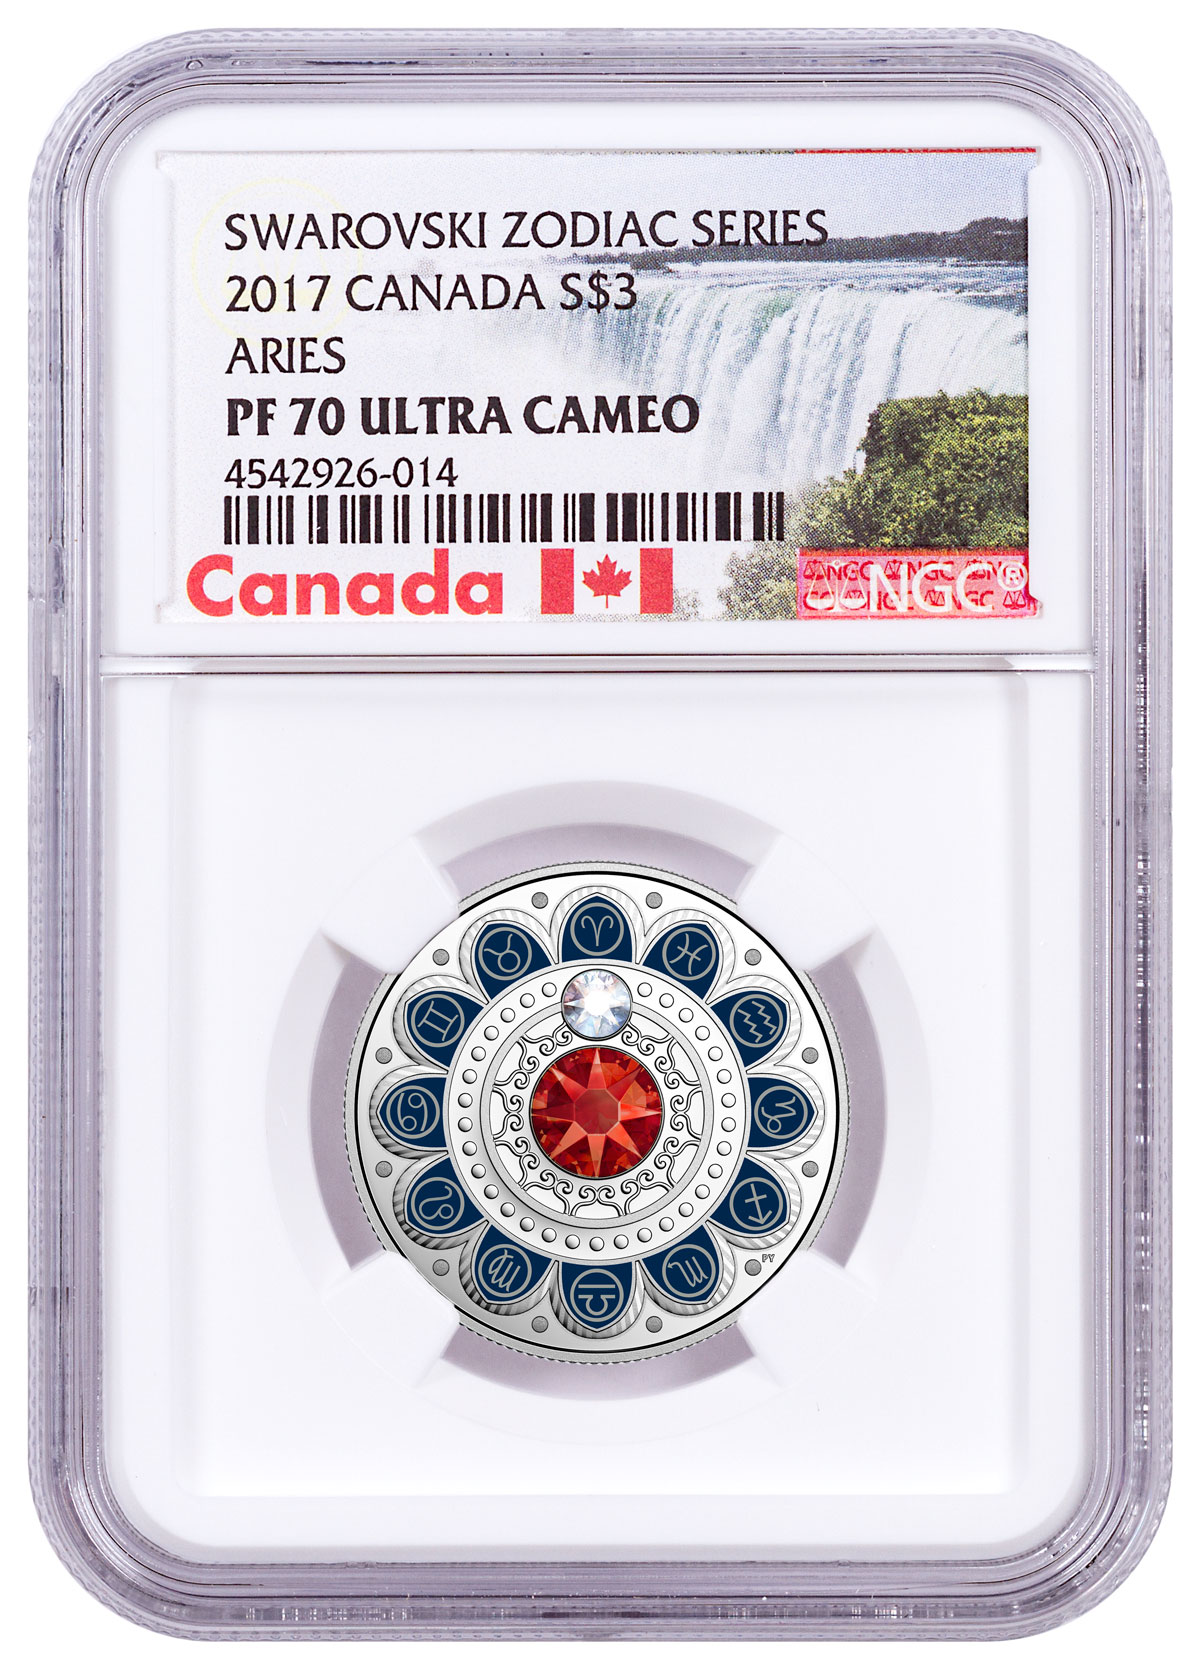 2017 Canada Zodiac Series - Aries with Swarovski Crystal 1/4 oz Silver Colorized Proof $3 Coin NGC PF69 UC (Exclusive Canada Label)